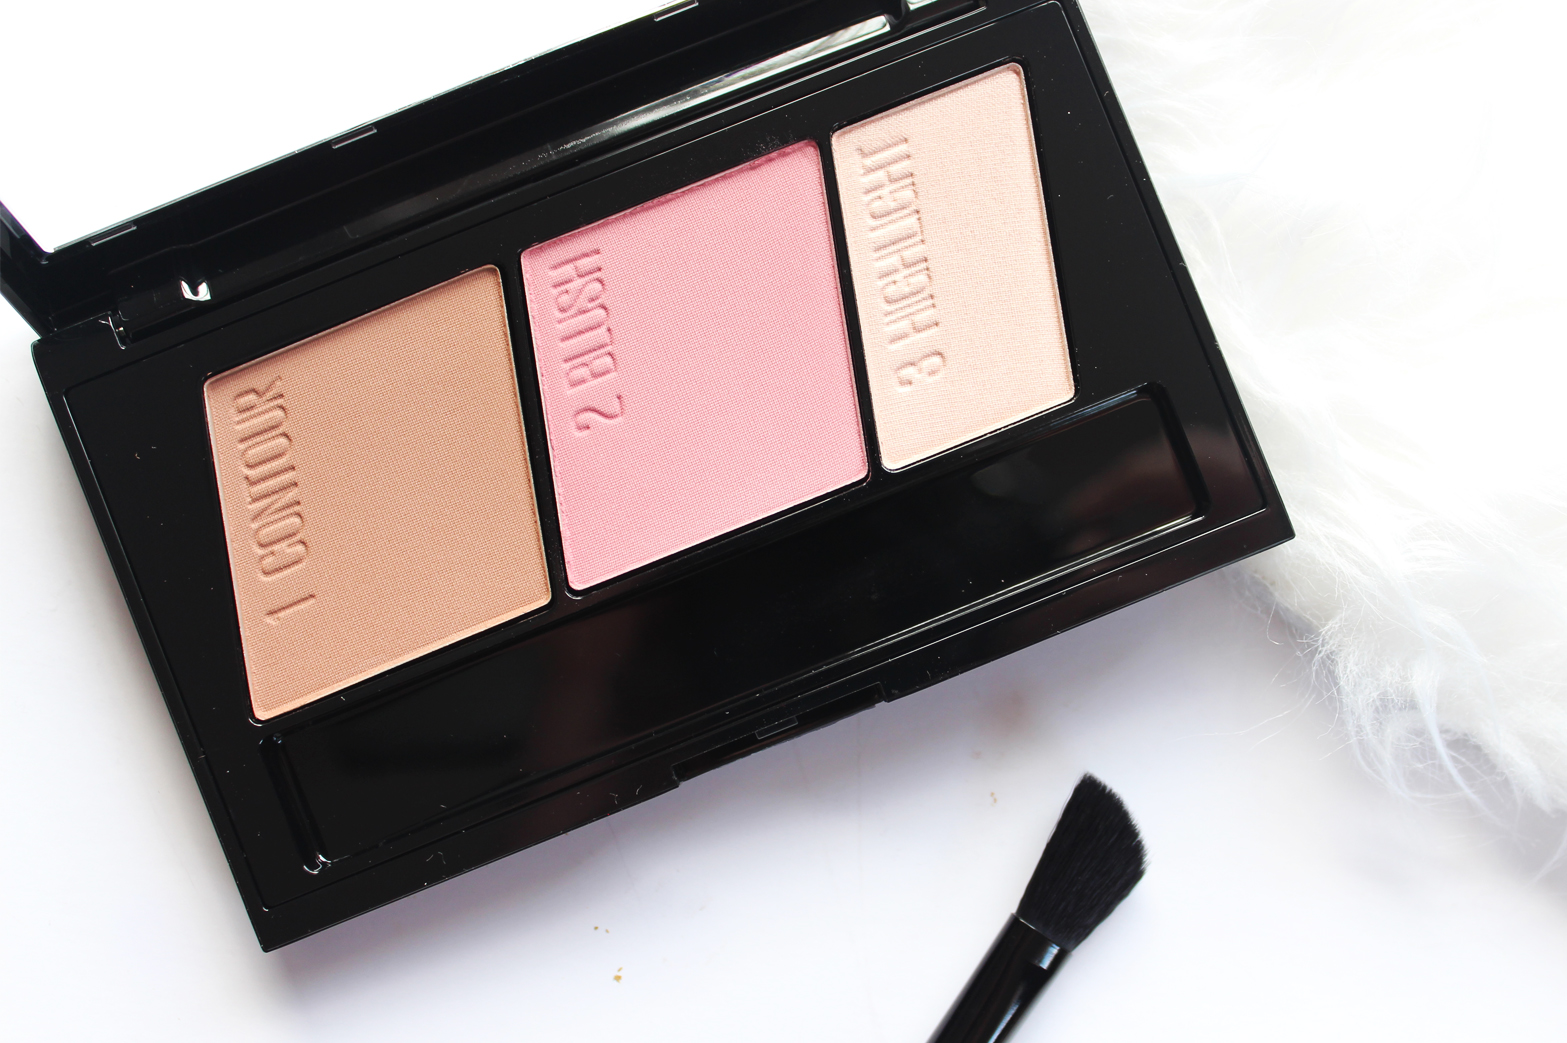 MAYBELLINE | Master Contour by Face Studio Kit - Review + Swatch - CassandraMyee